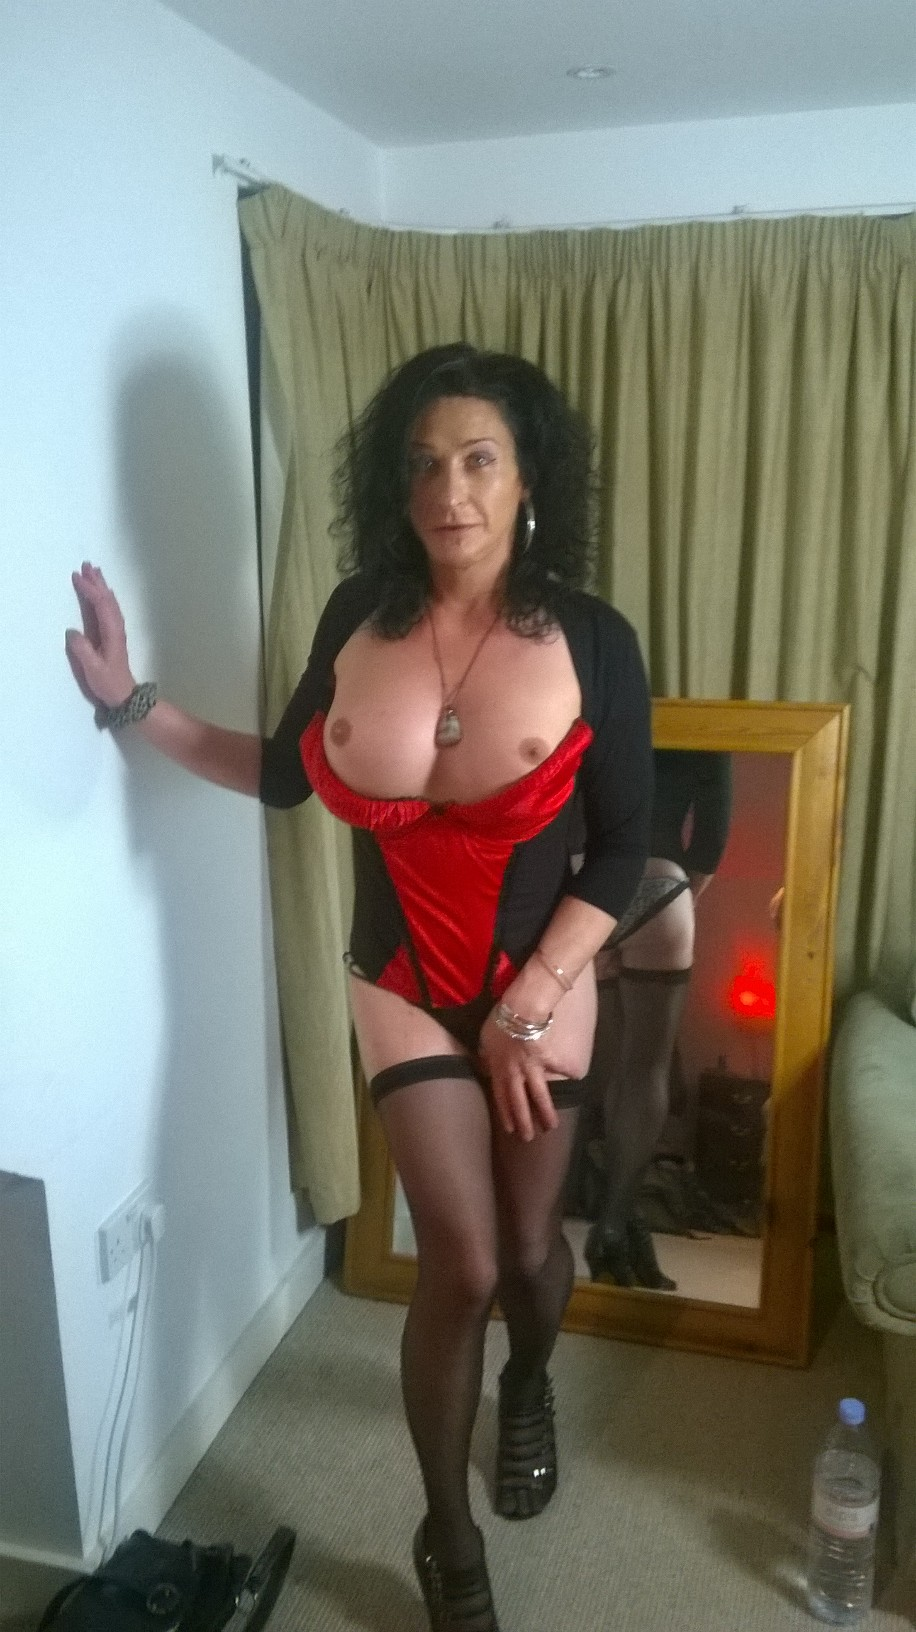 edmonton escorts transsexual